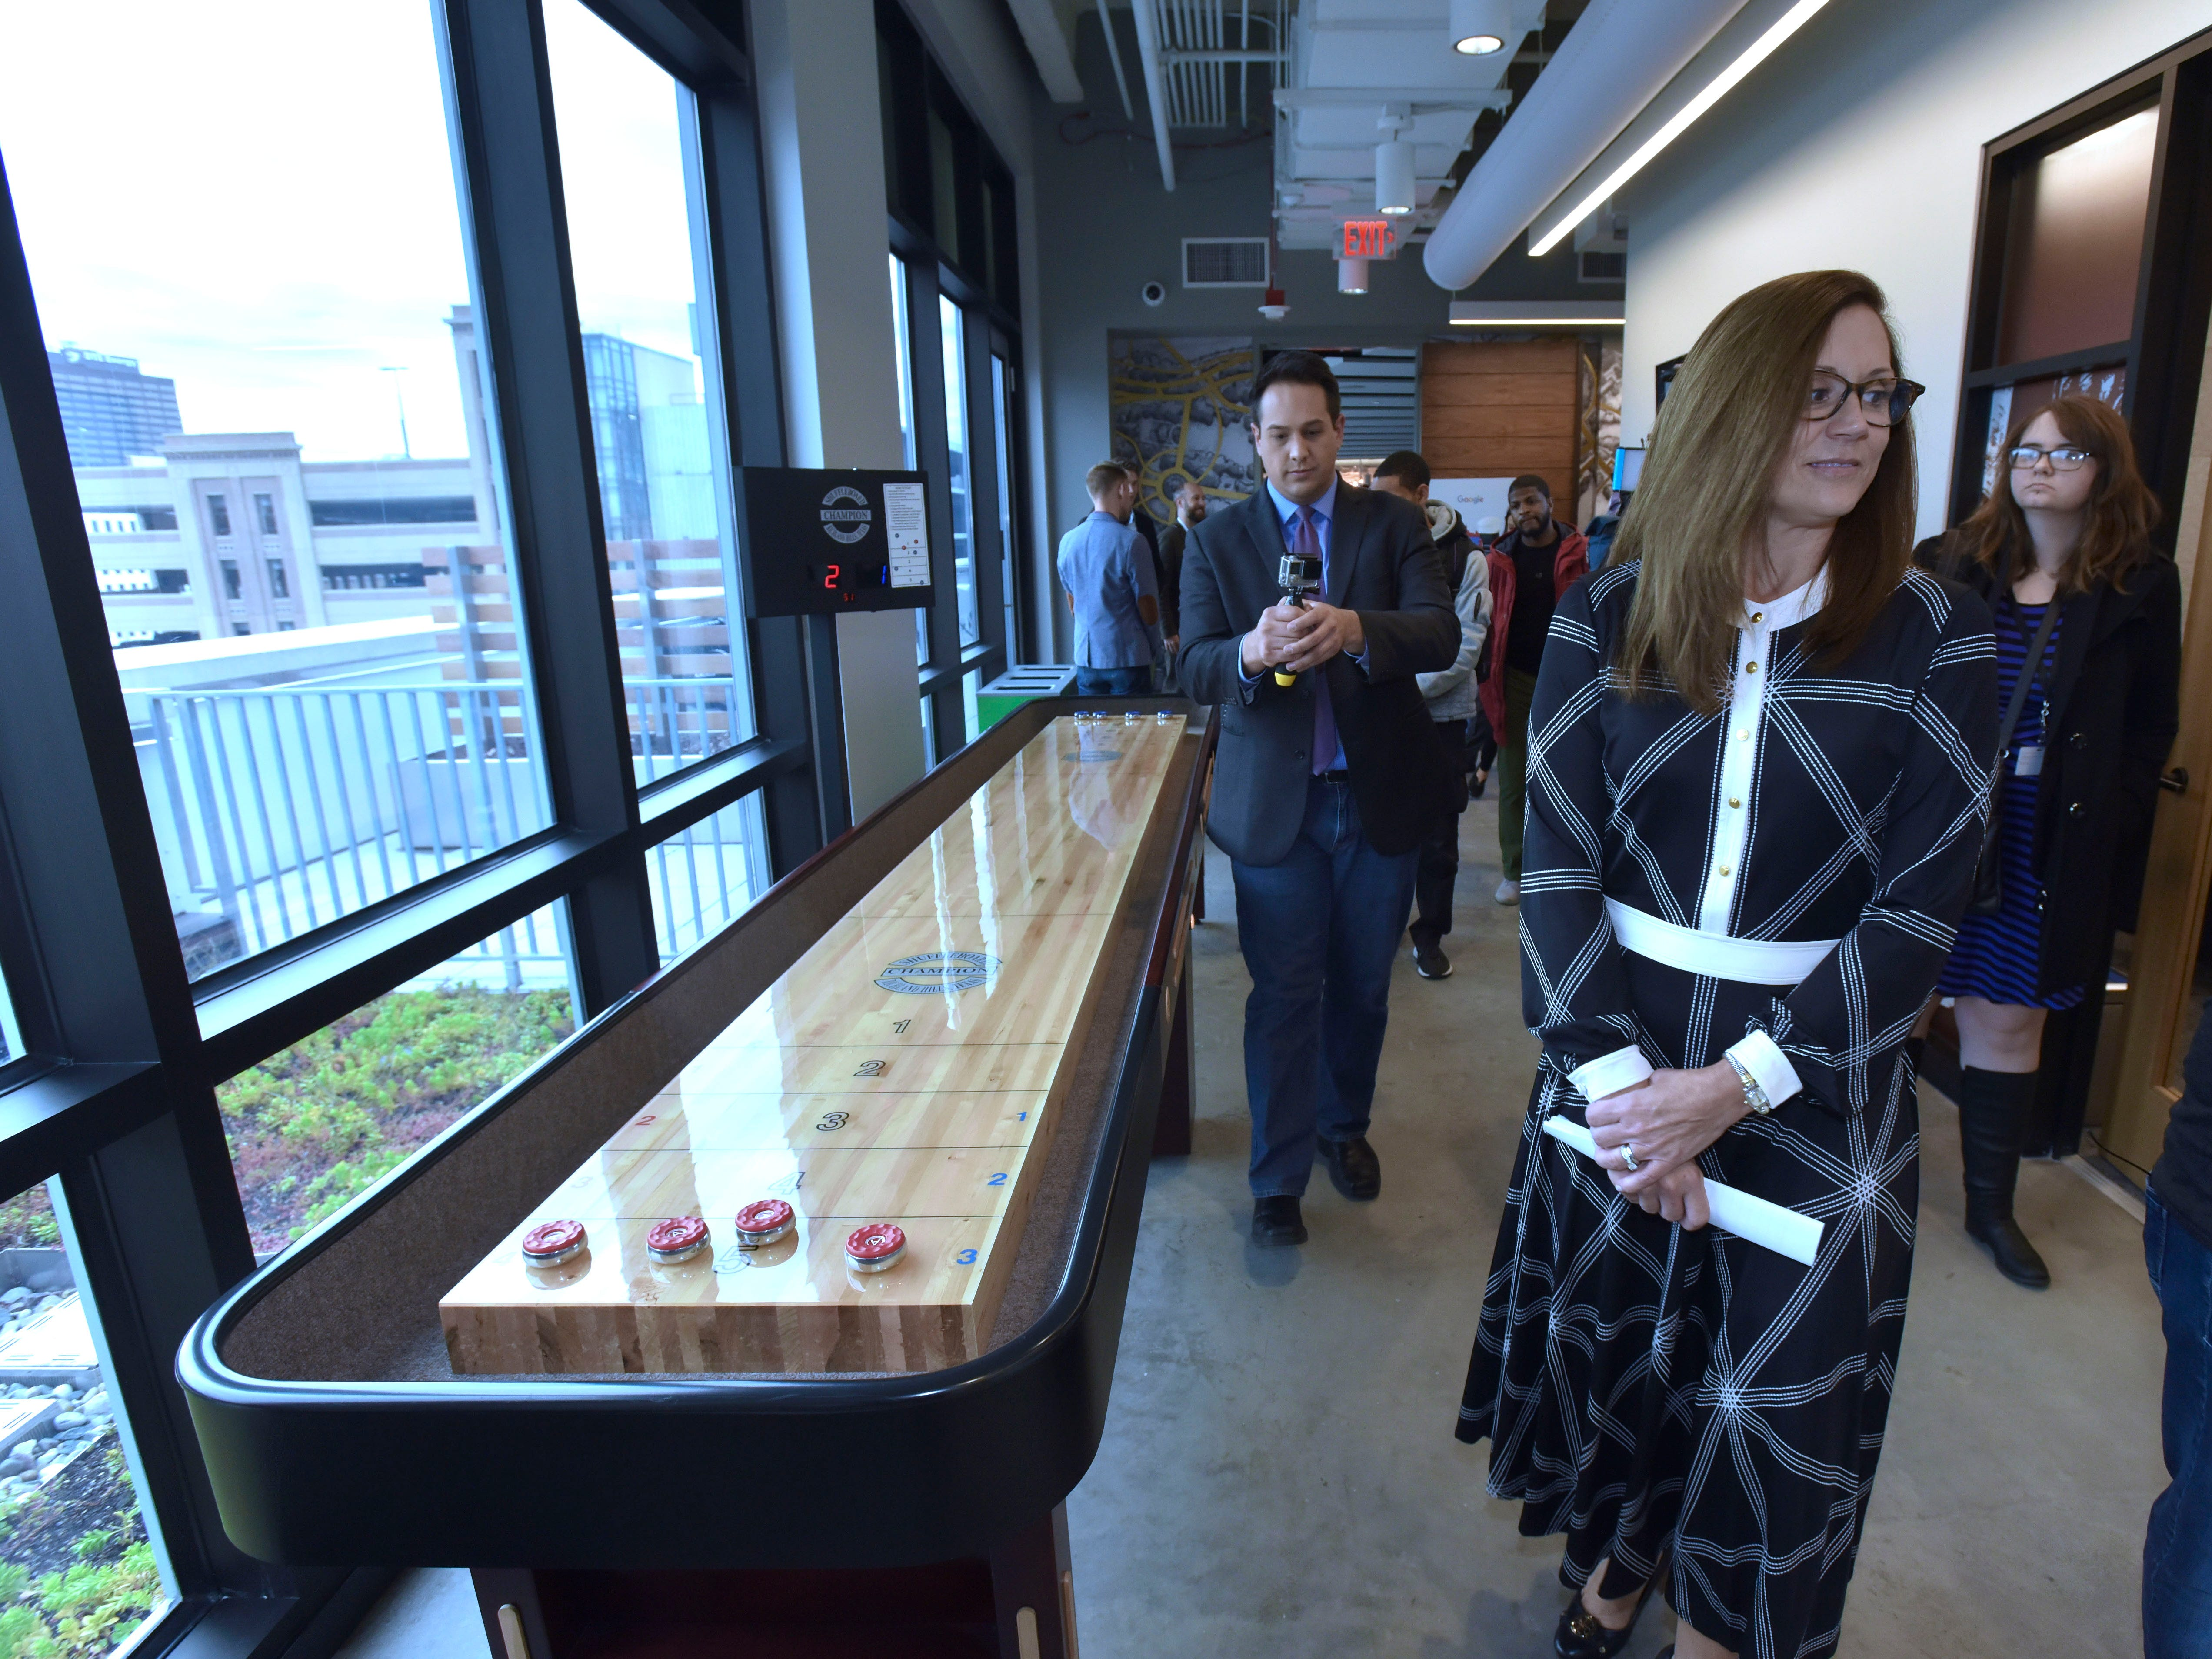 Danielle Russell, Google Detroit Site Leader, walks past a shuffle board table in the hallway during the media tour.